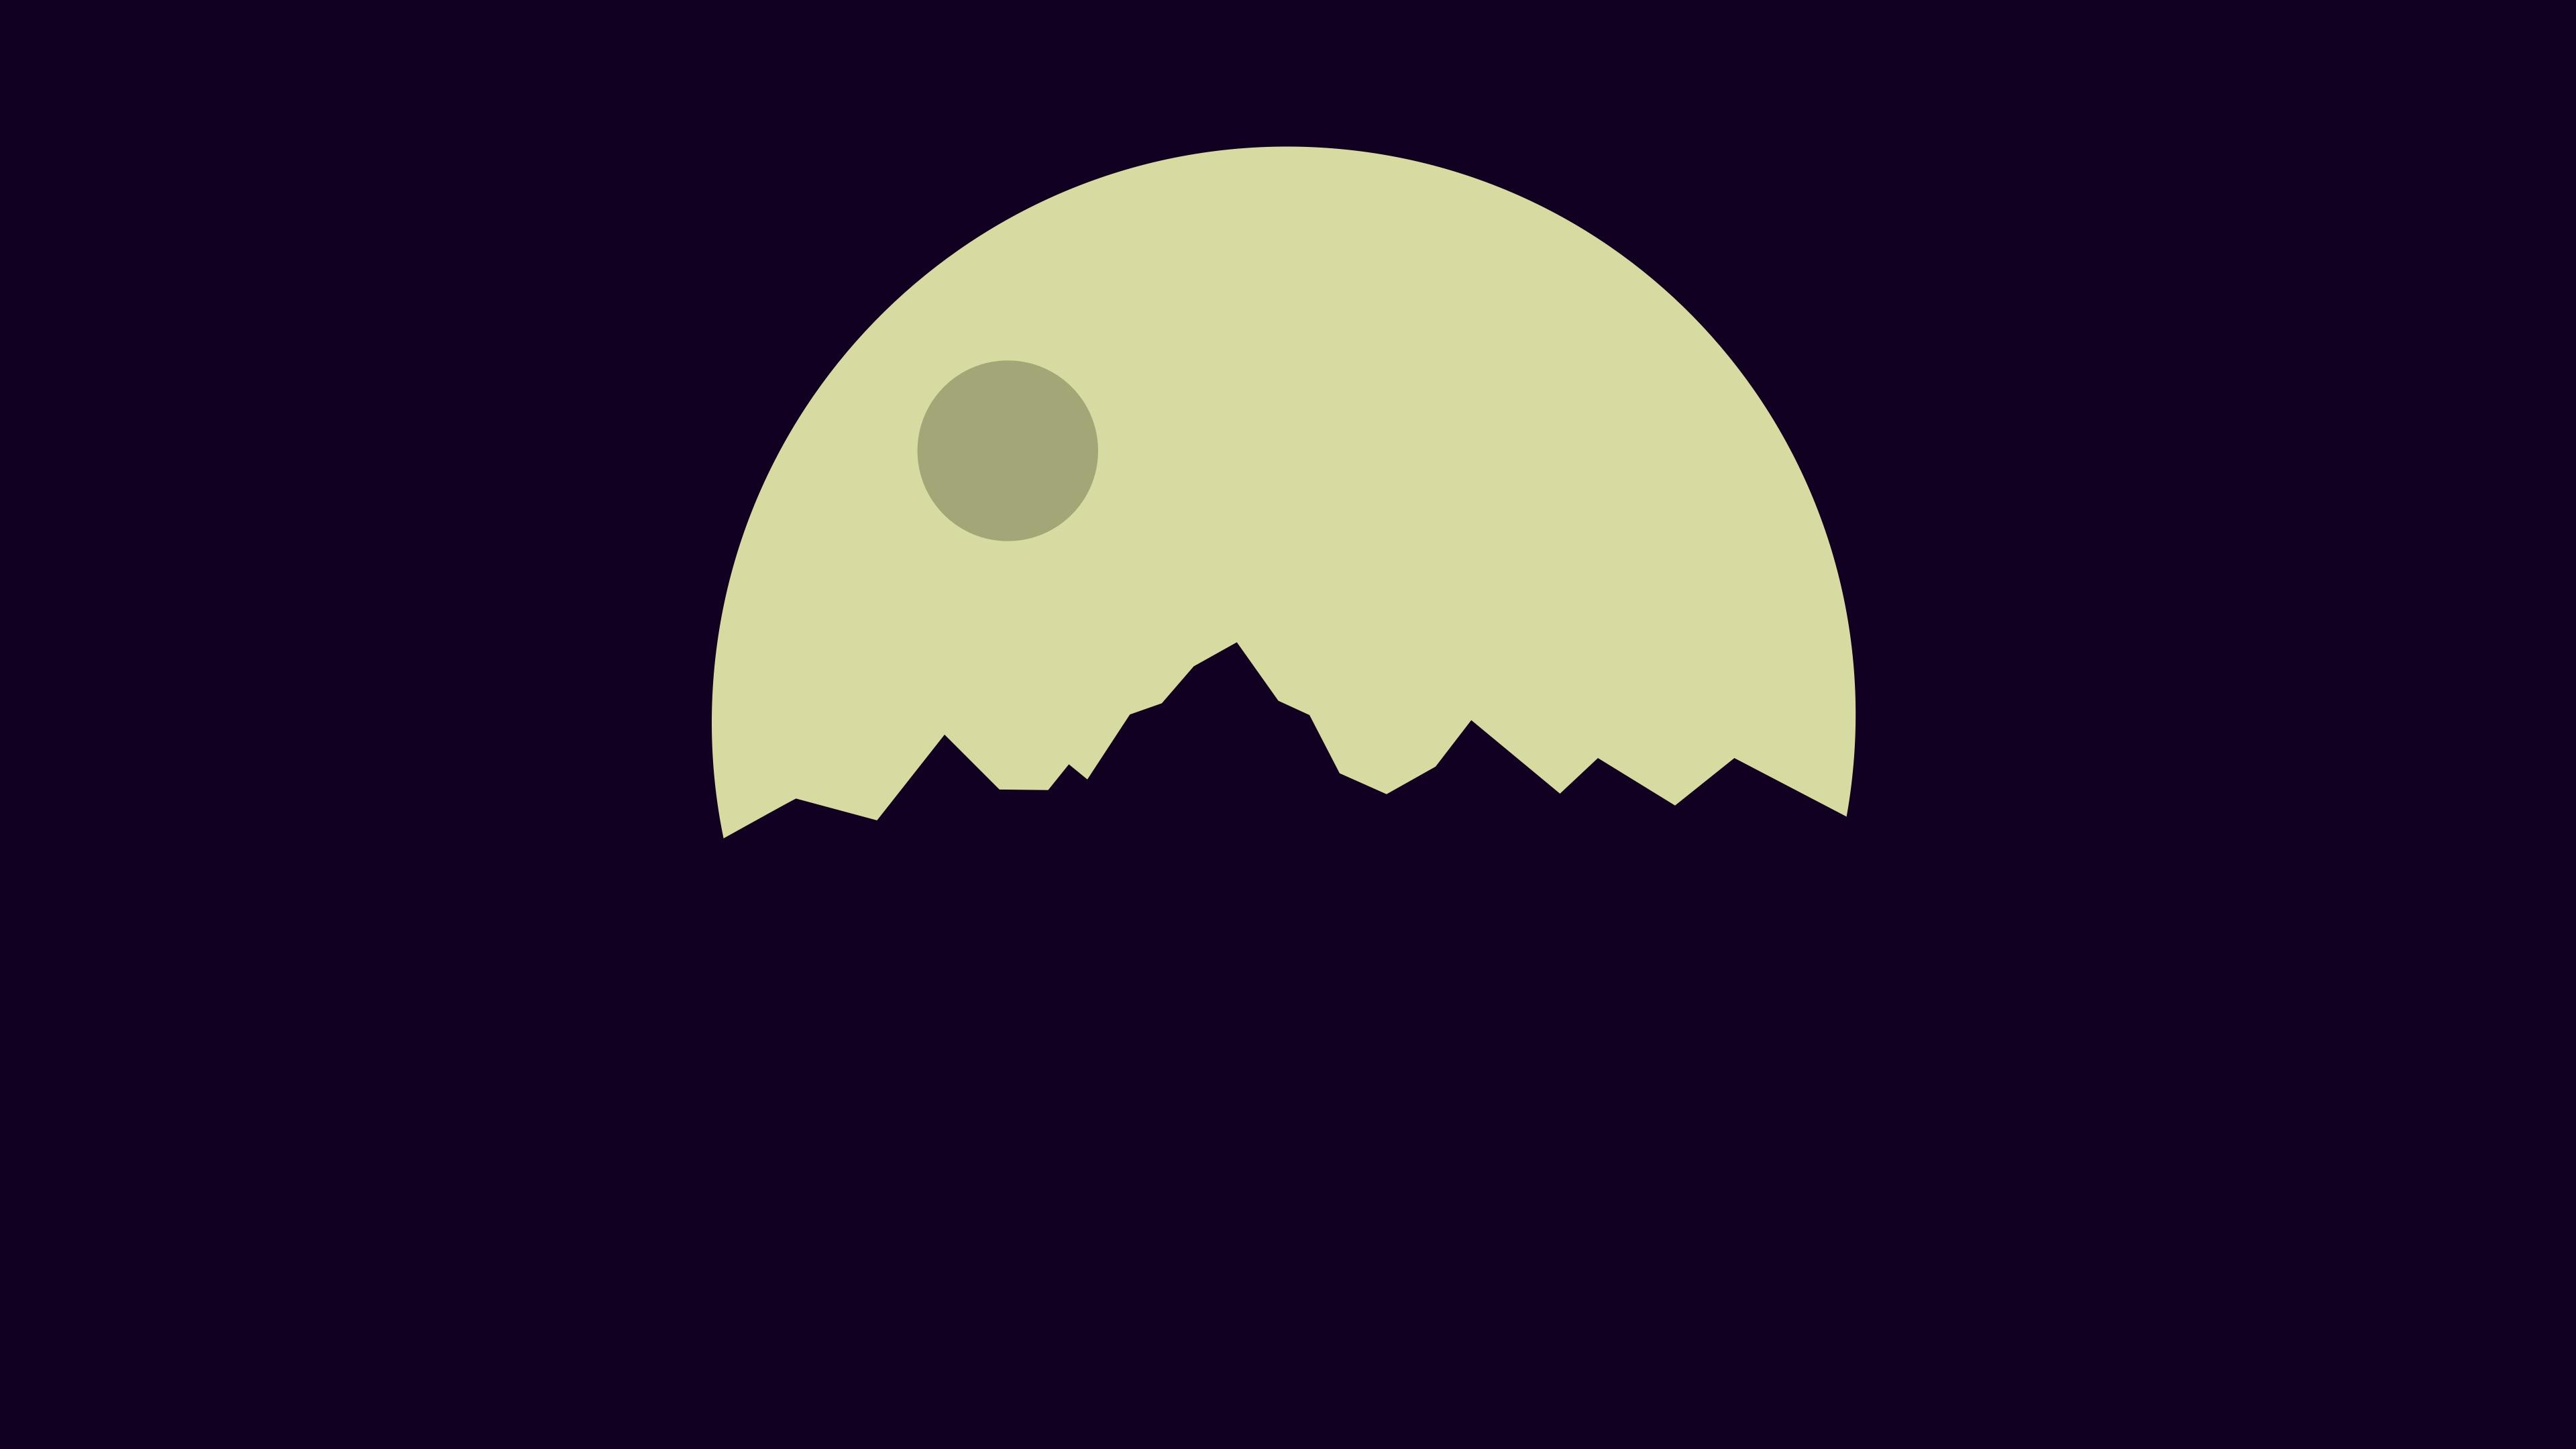 Minimalist Moon Wallpapers